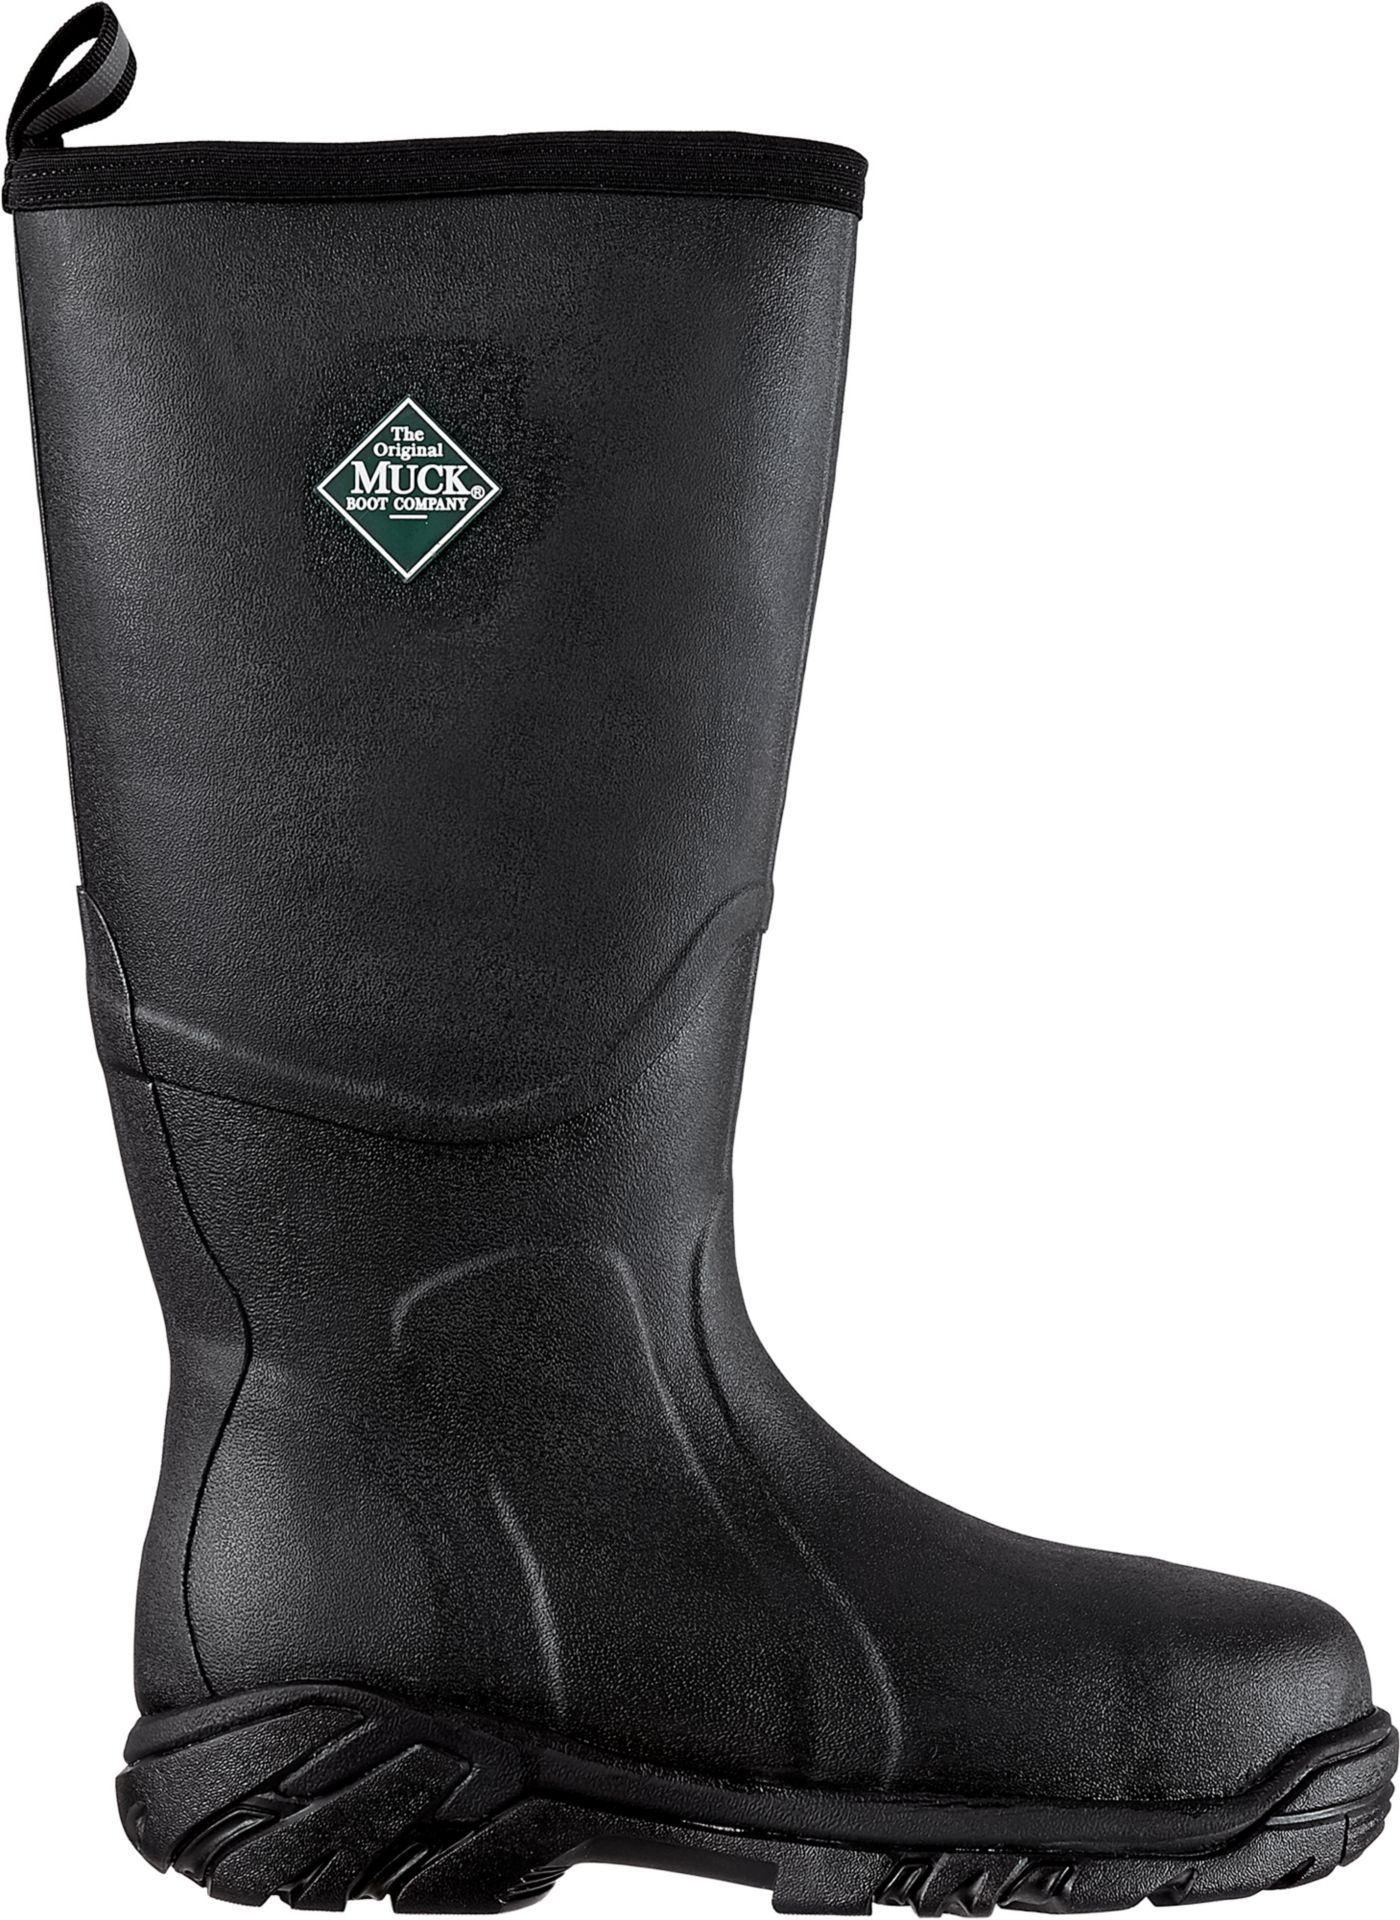 Muck Boots Men's Arctic Extreme Insulated Waterproof Composite Toe Work Boots